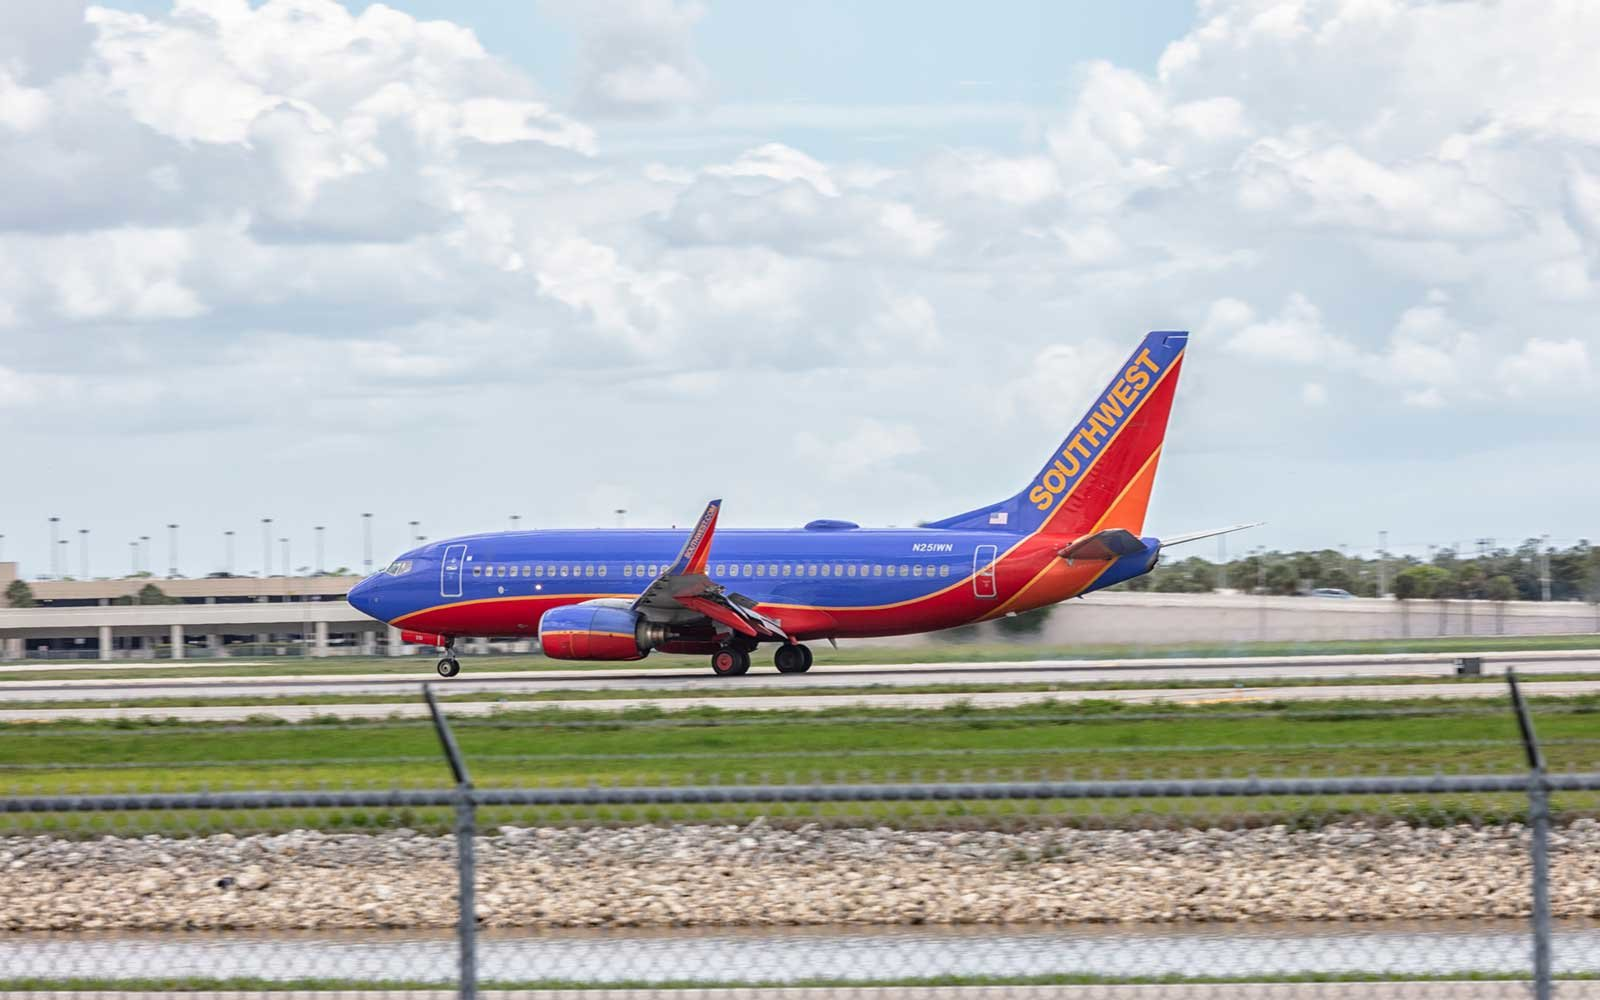 Unwanted game of 'footsie' on Southwest flight leads to emergency landing